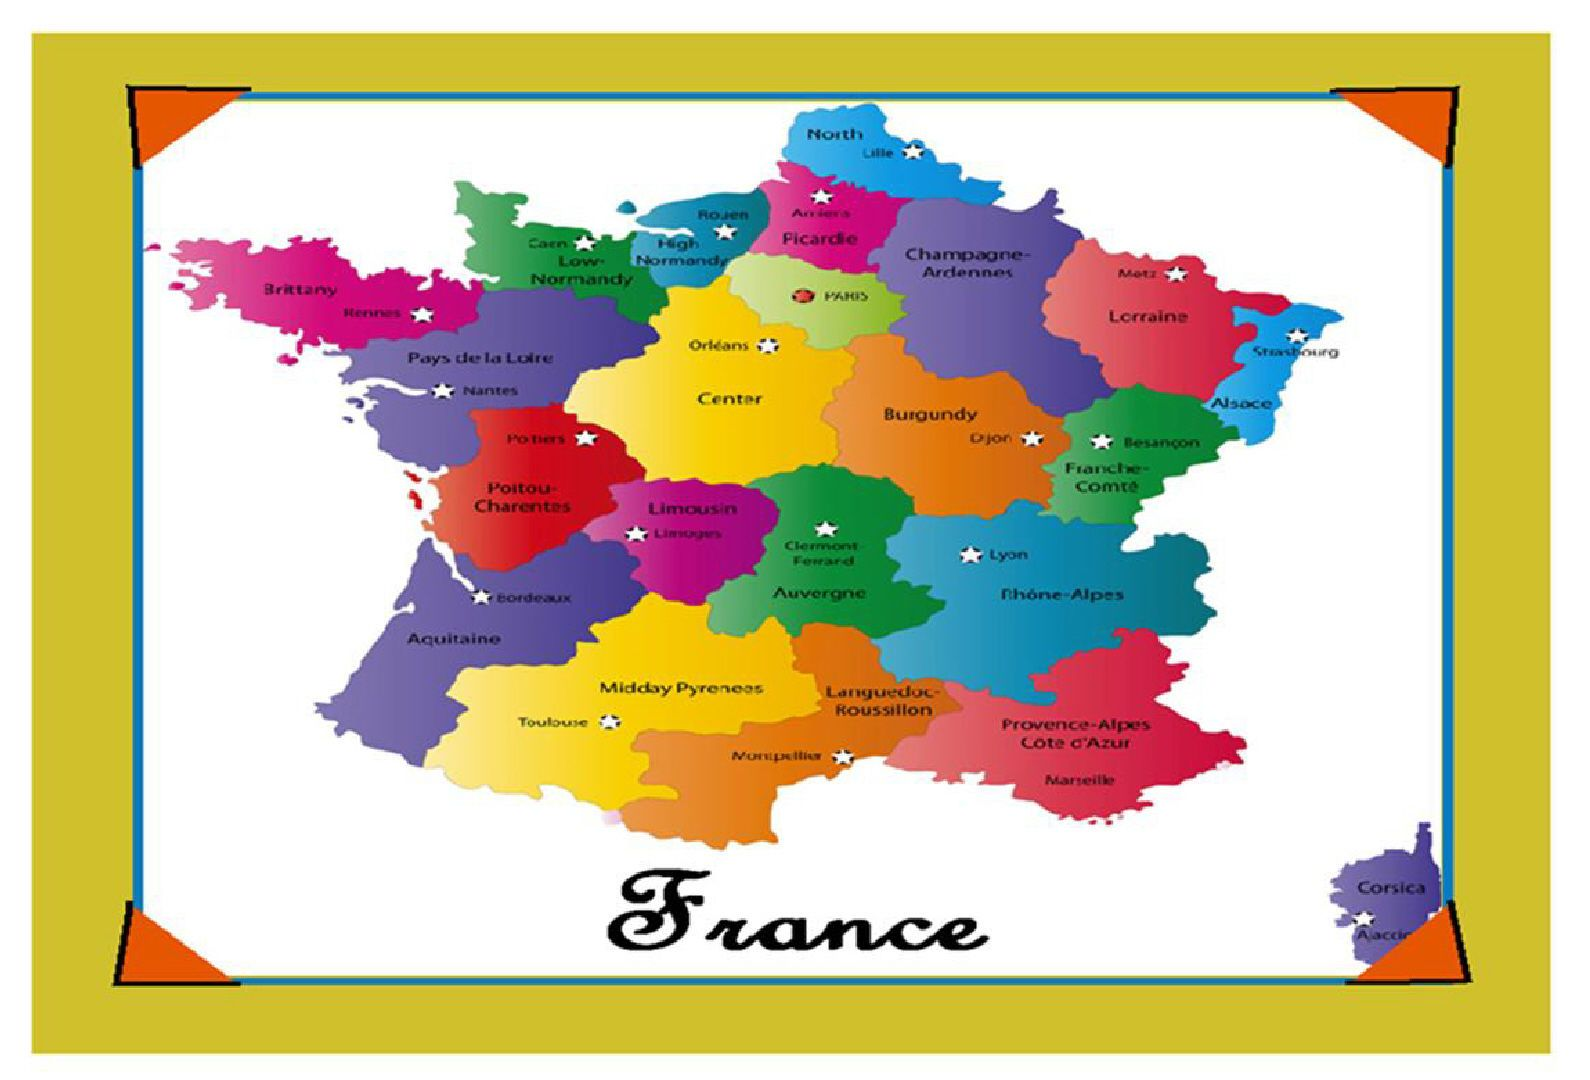 FRANCE SOUVENIR NOVELTY FRIDGE MAGNET BRAND NEW